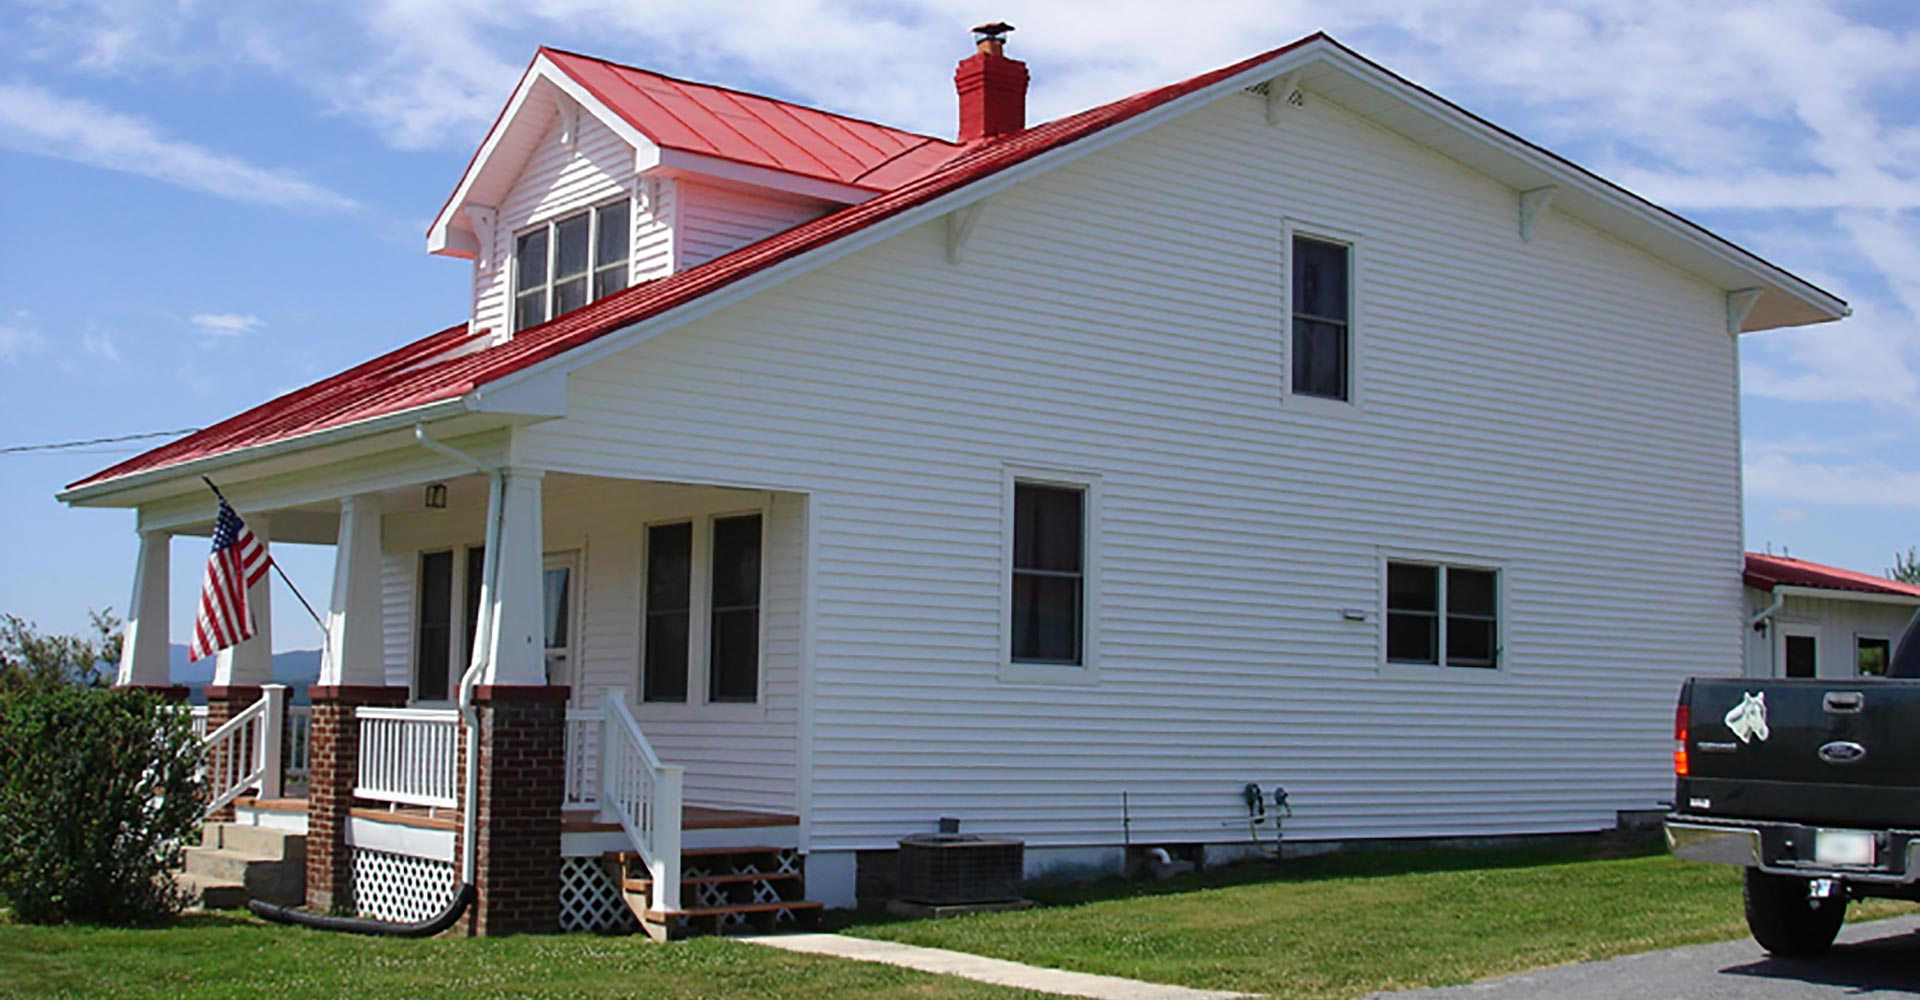 How To Install An Awning On A Vinyl Siding House ...